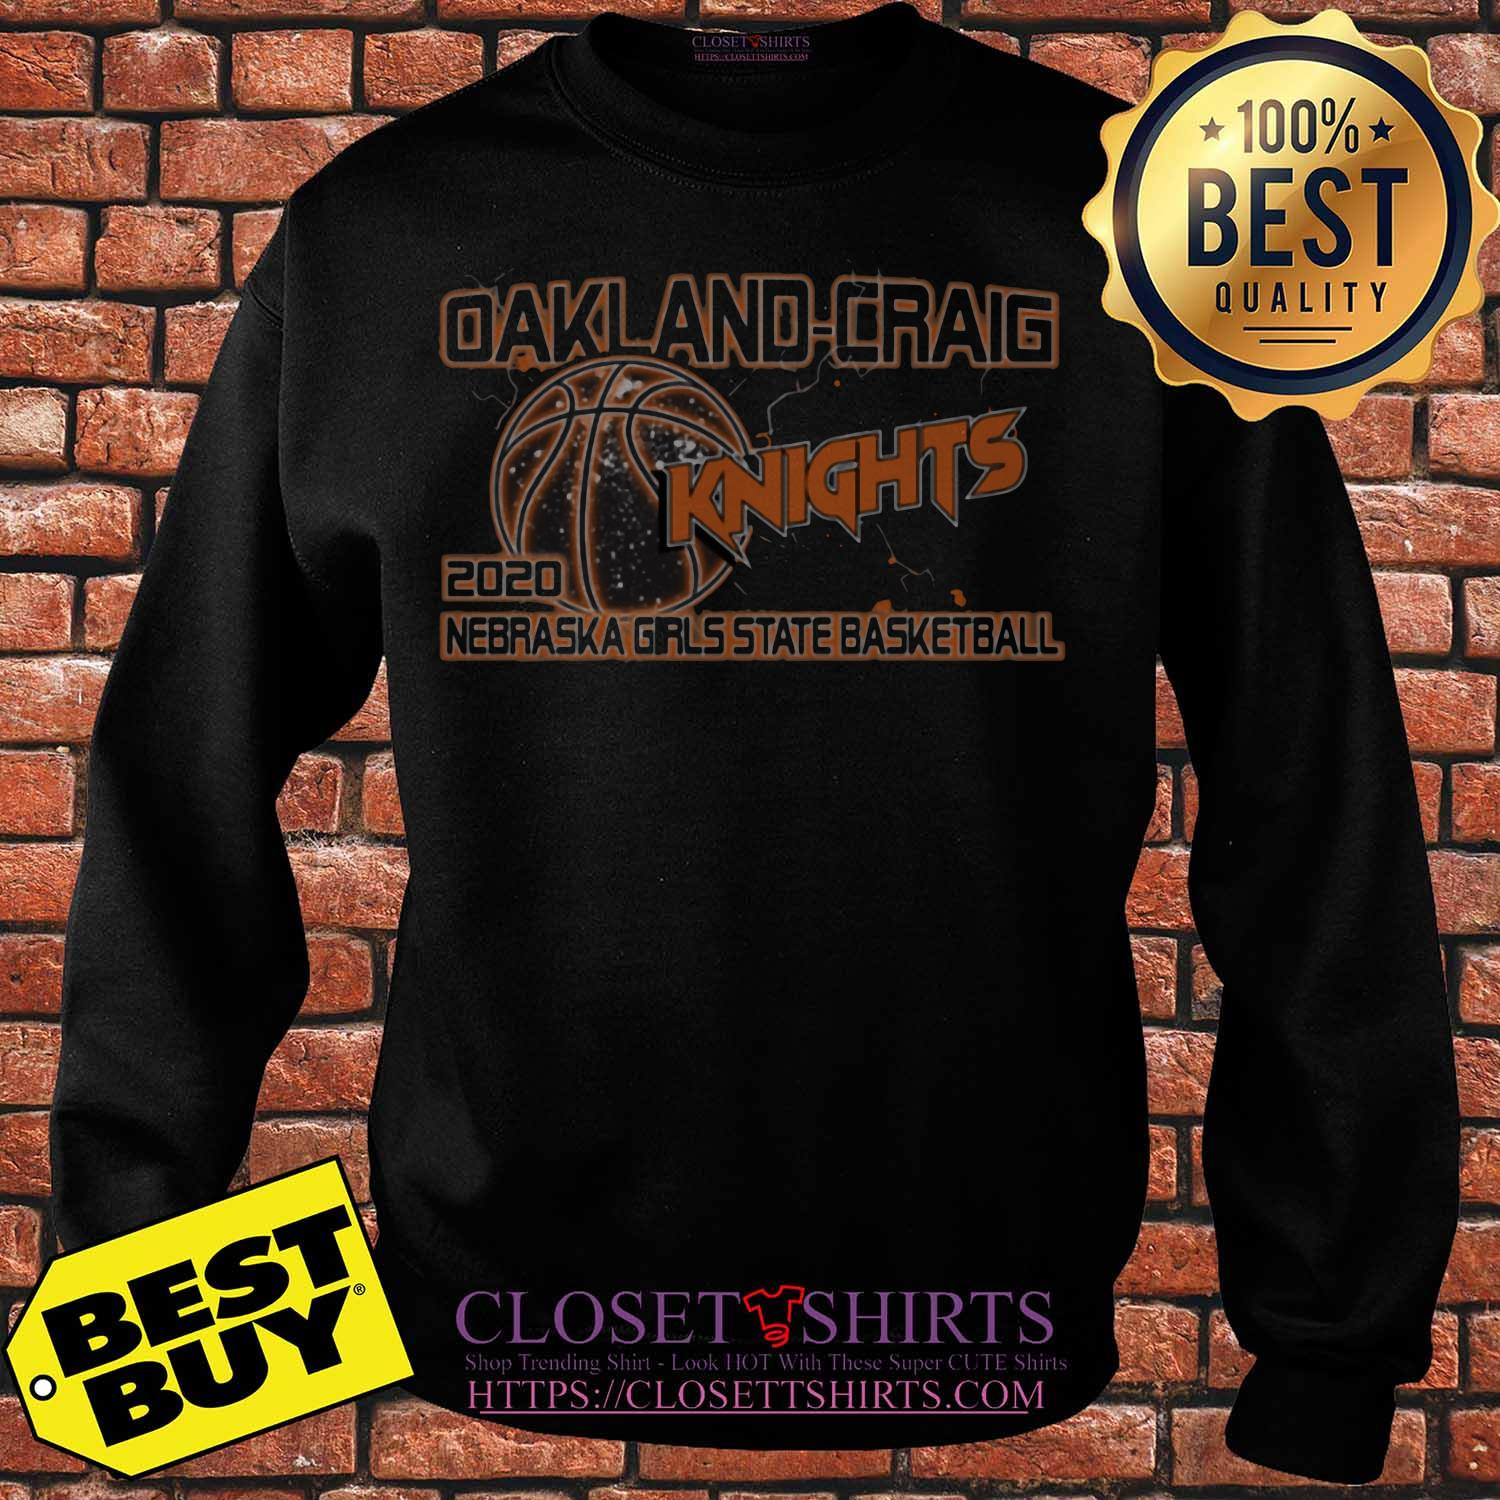 Oakland Craig Knight 2020 Nebraska Girls State Basketball Sweater